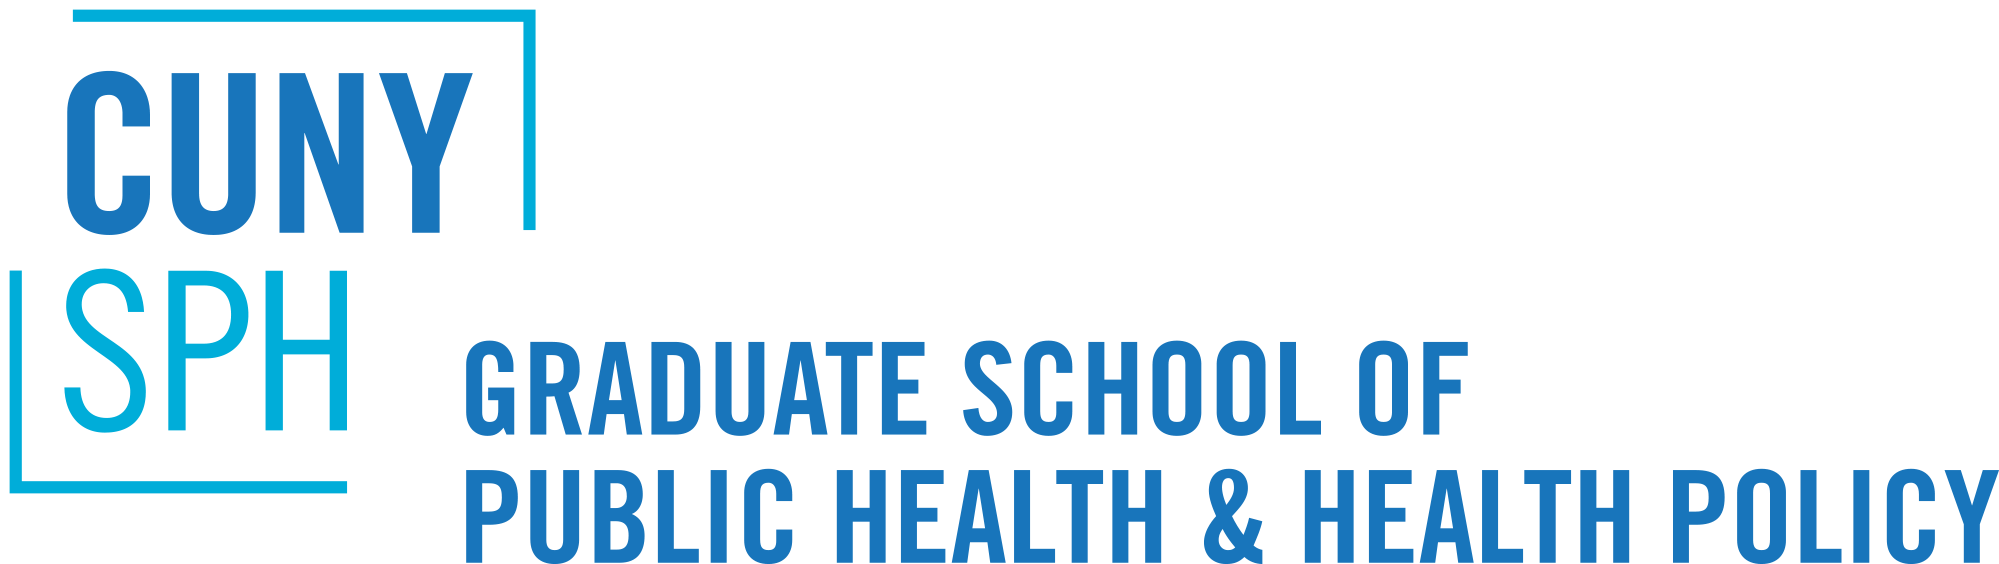 public health grad school essays Business school graduate school if an additional essay is requested, please email the rollins school of public health office of admissions directly and.